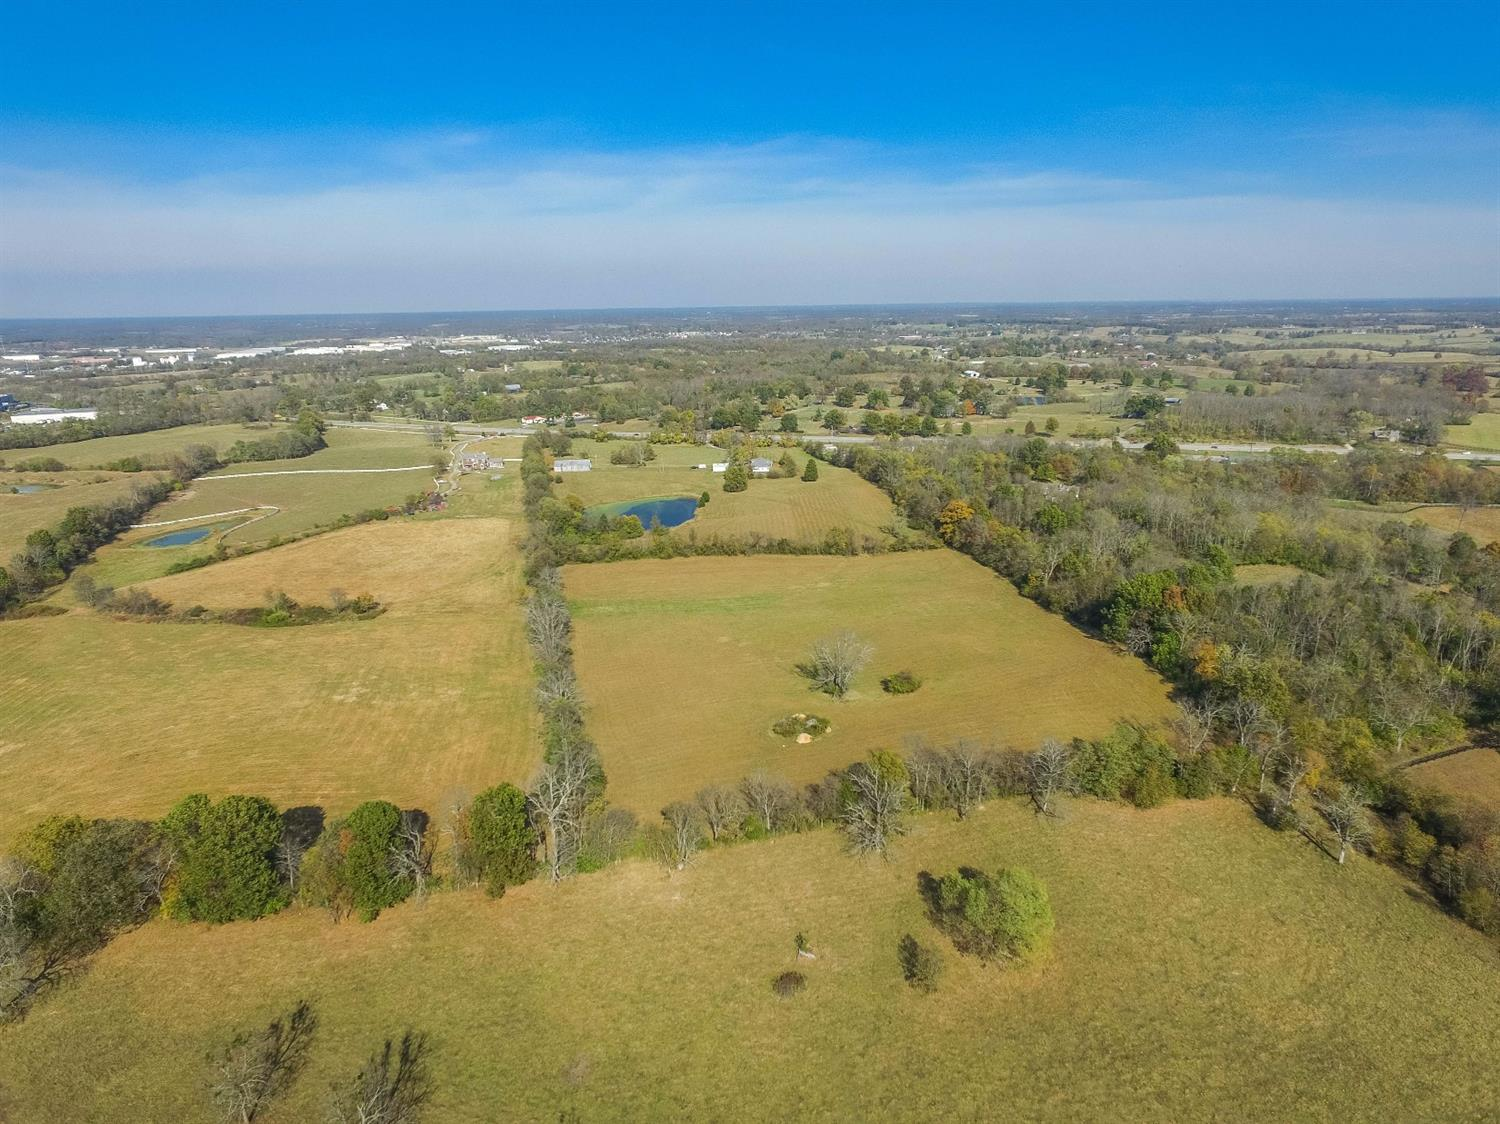 This%20farm%20has%20great%20road%20frontage%20to%20US%2060%20and%20even%20though%20it%20has%20a%20Frankfort%20address%20it%20is%20in%20Woodford%20county.%20%20On%20the%20farm%20you%20will%20find%20a%203200+%20Sq%20ft,%203%20bedroom/%202%20bath%20farm%20house.%20%20There%20is%20also%20an%208%20stall%20barn%20and%20a%201+%20acre%20pond.%20%20The%20perimeter%20of%20the%20property%20is%20fenced%20and%20ready%20for%20horses%20or%20cattle.%20%20**Home%20is%20in%20Woodford%20county%20but%20has%20a%20Frankfort%20address.%20%20Entered%20in%20MLS%20as%20Versailles%20as%20MLS%20limits%20options.